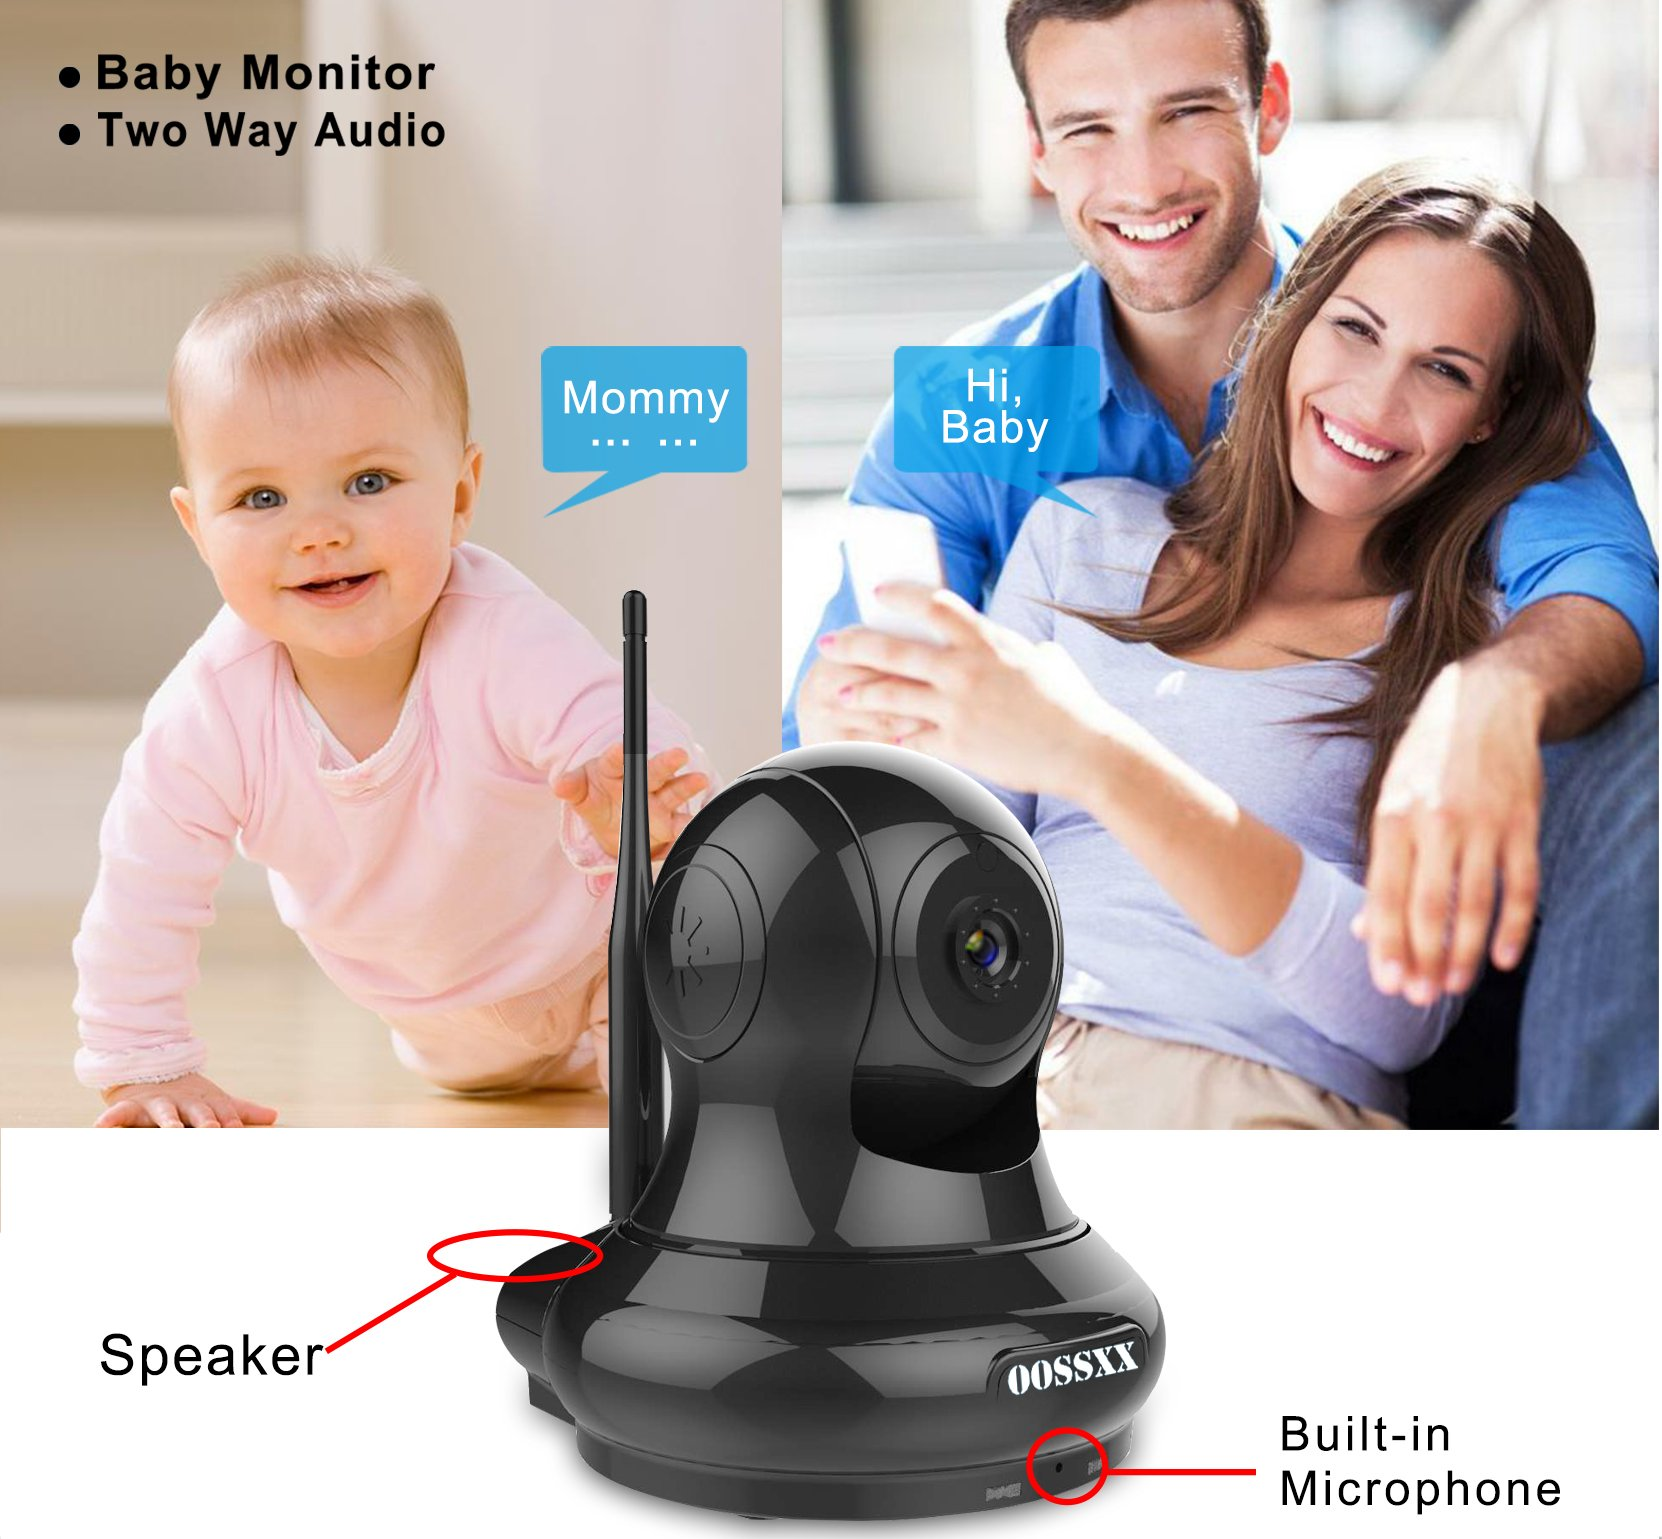 1080P Home/Business Wireless IP Camera, OOSSXX HD Indoor Wireless Security Camera with Motion Detection, Two Way Audio, Pan/Tilt, Night Vision, Multi camera preview,for Baby Monitor, Nanny Cam,Pet Cam by OOSSXX (Image #5)